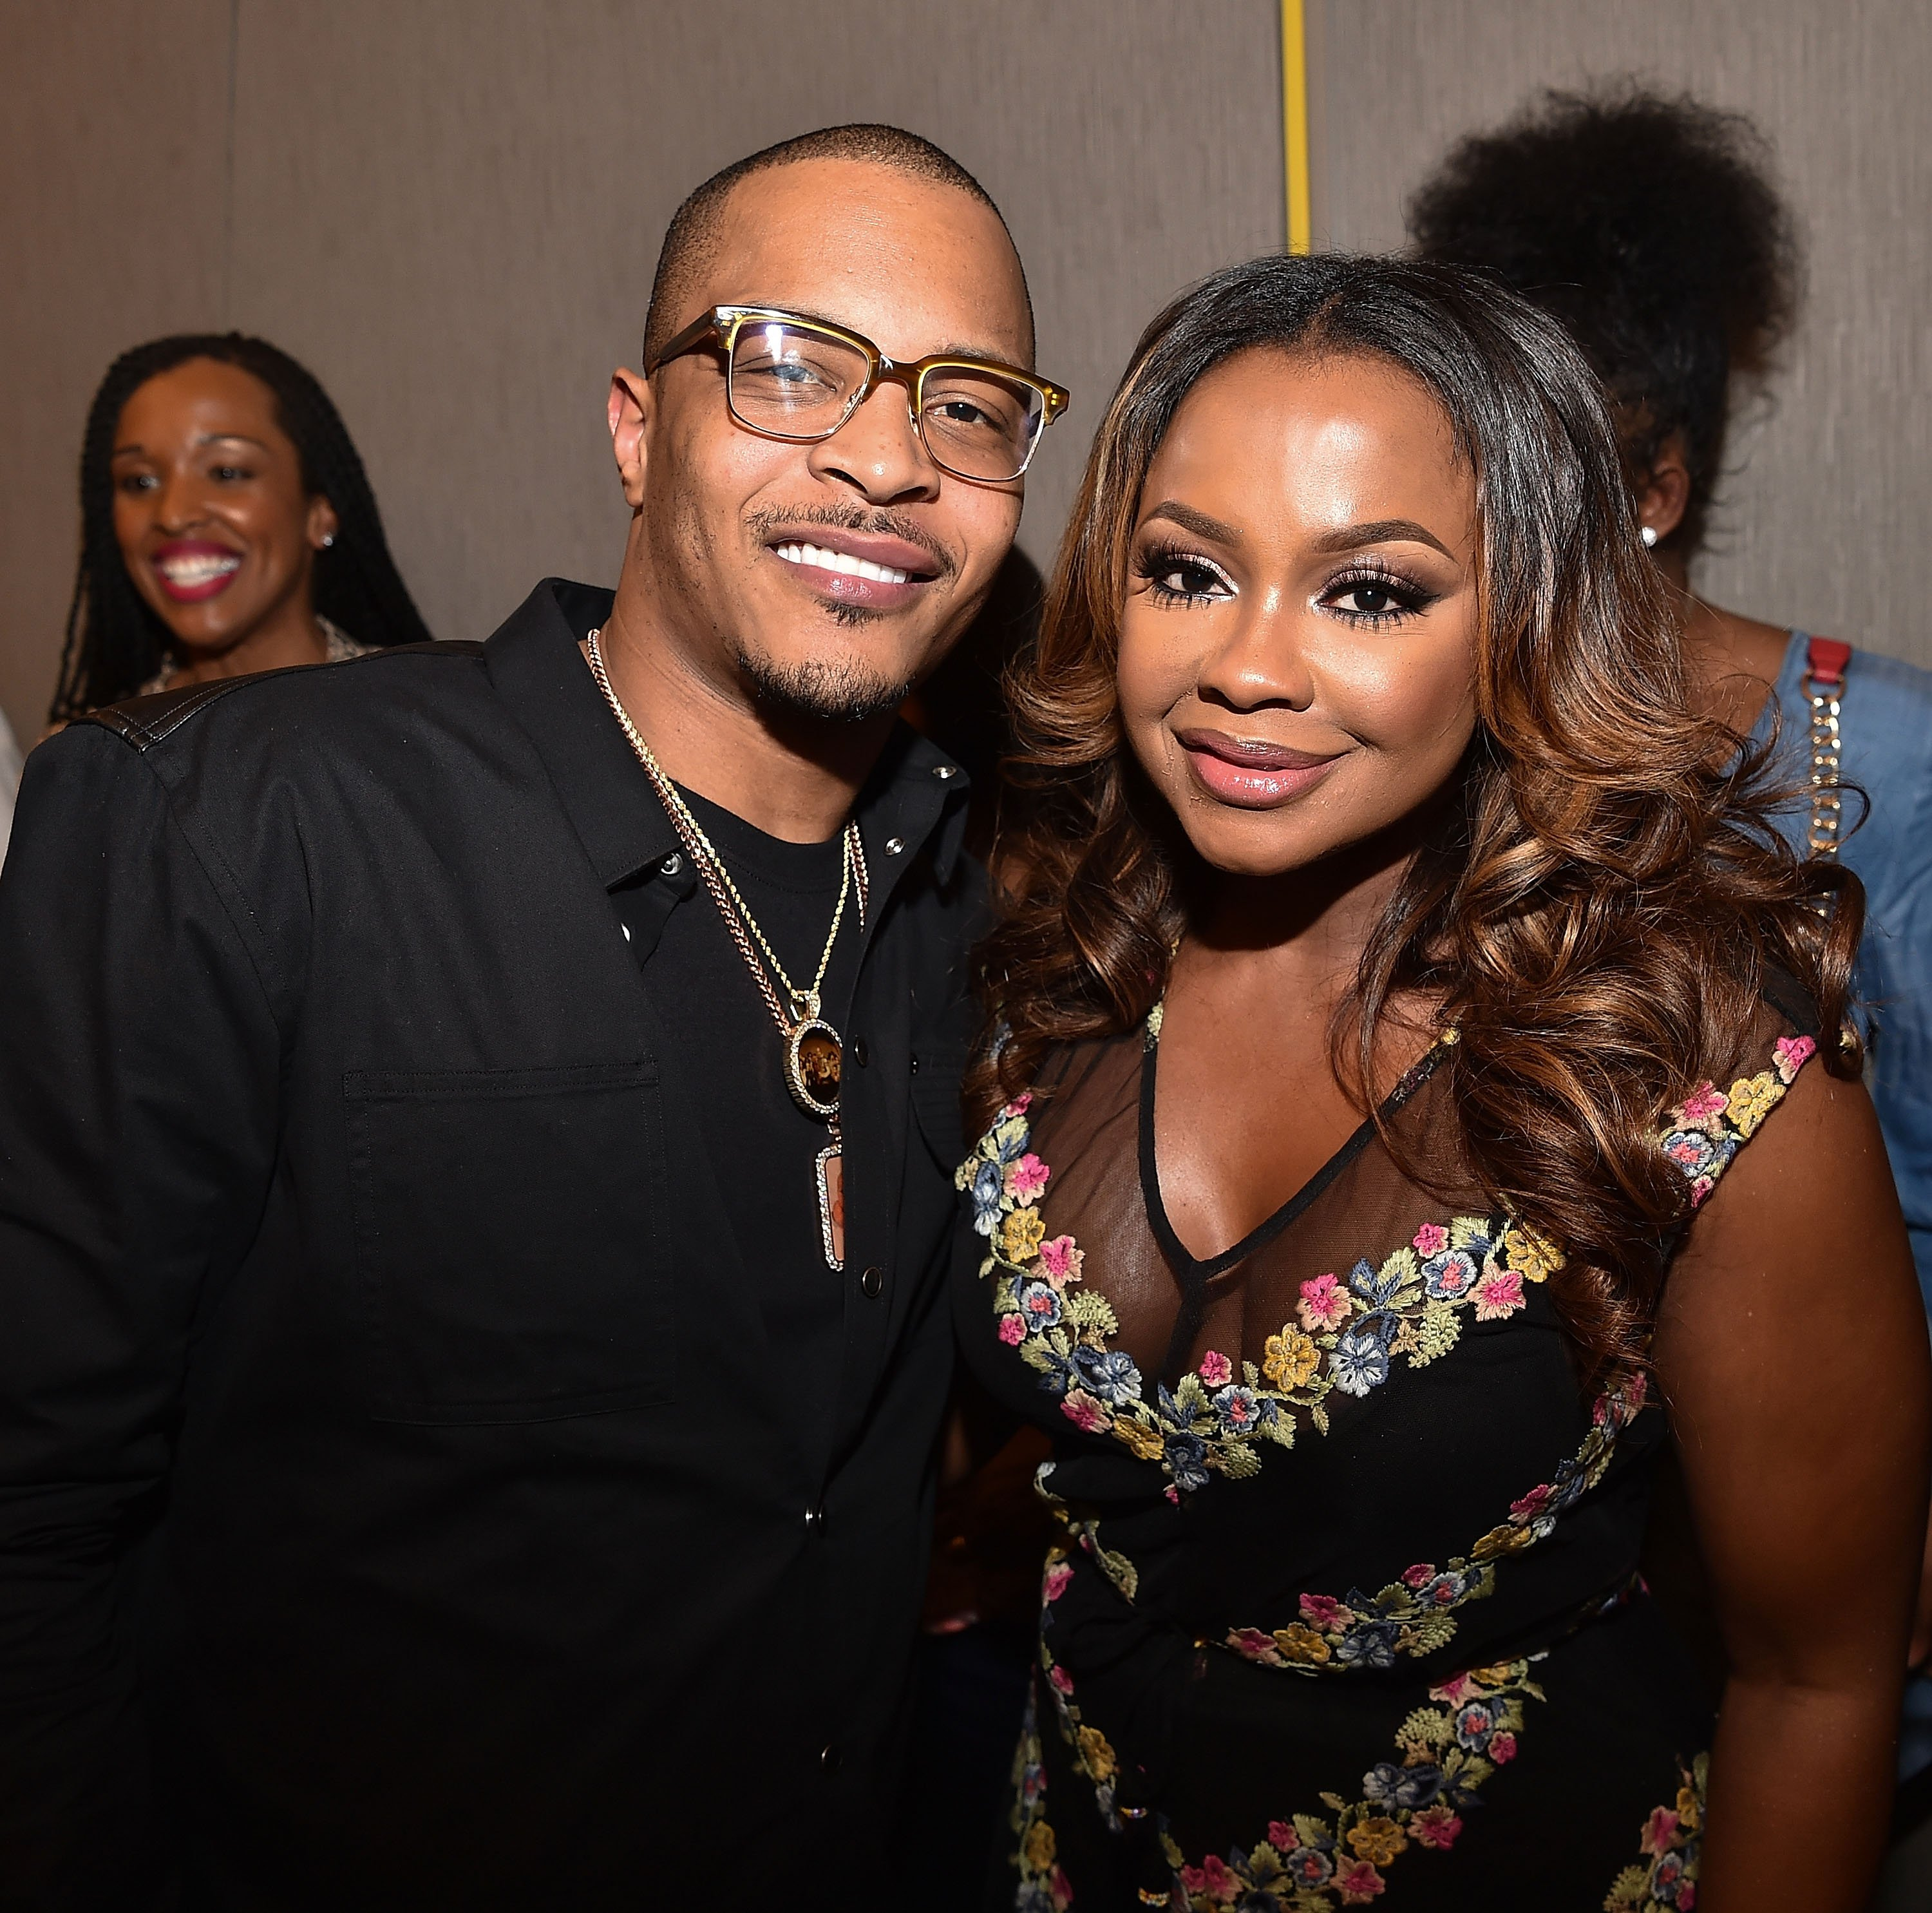 """""""ATLANTA, GA - MAY 09: Tip """"T.I."""" Harris and Phaedra Parks attend HISTORY's """"Roots"""" Atlanta advanced screening at National Center for Civil and Human Rights on May 9, 2016 in Atlanta, Georgia. (Photo by Paras Griffin/Getty Images for History/Roots)"""""""